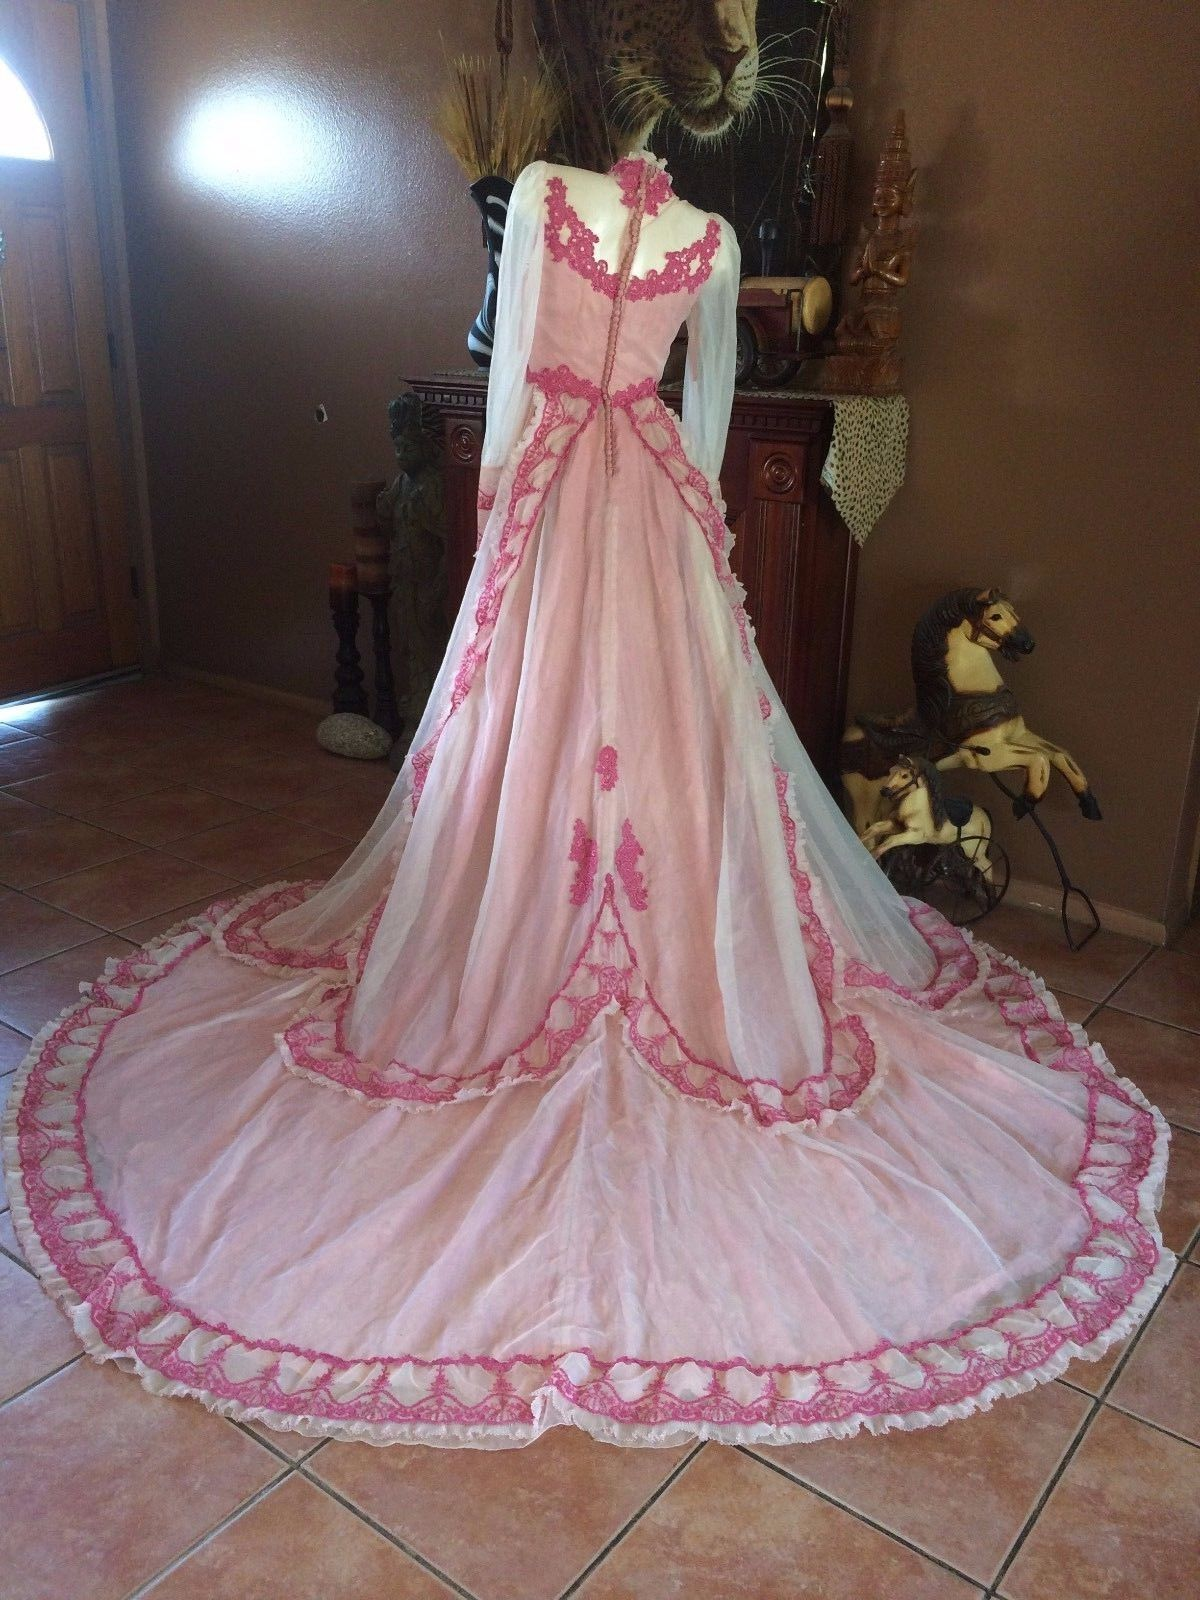 Nice great vintage wedding rose petal gown cathedral length train